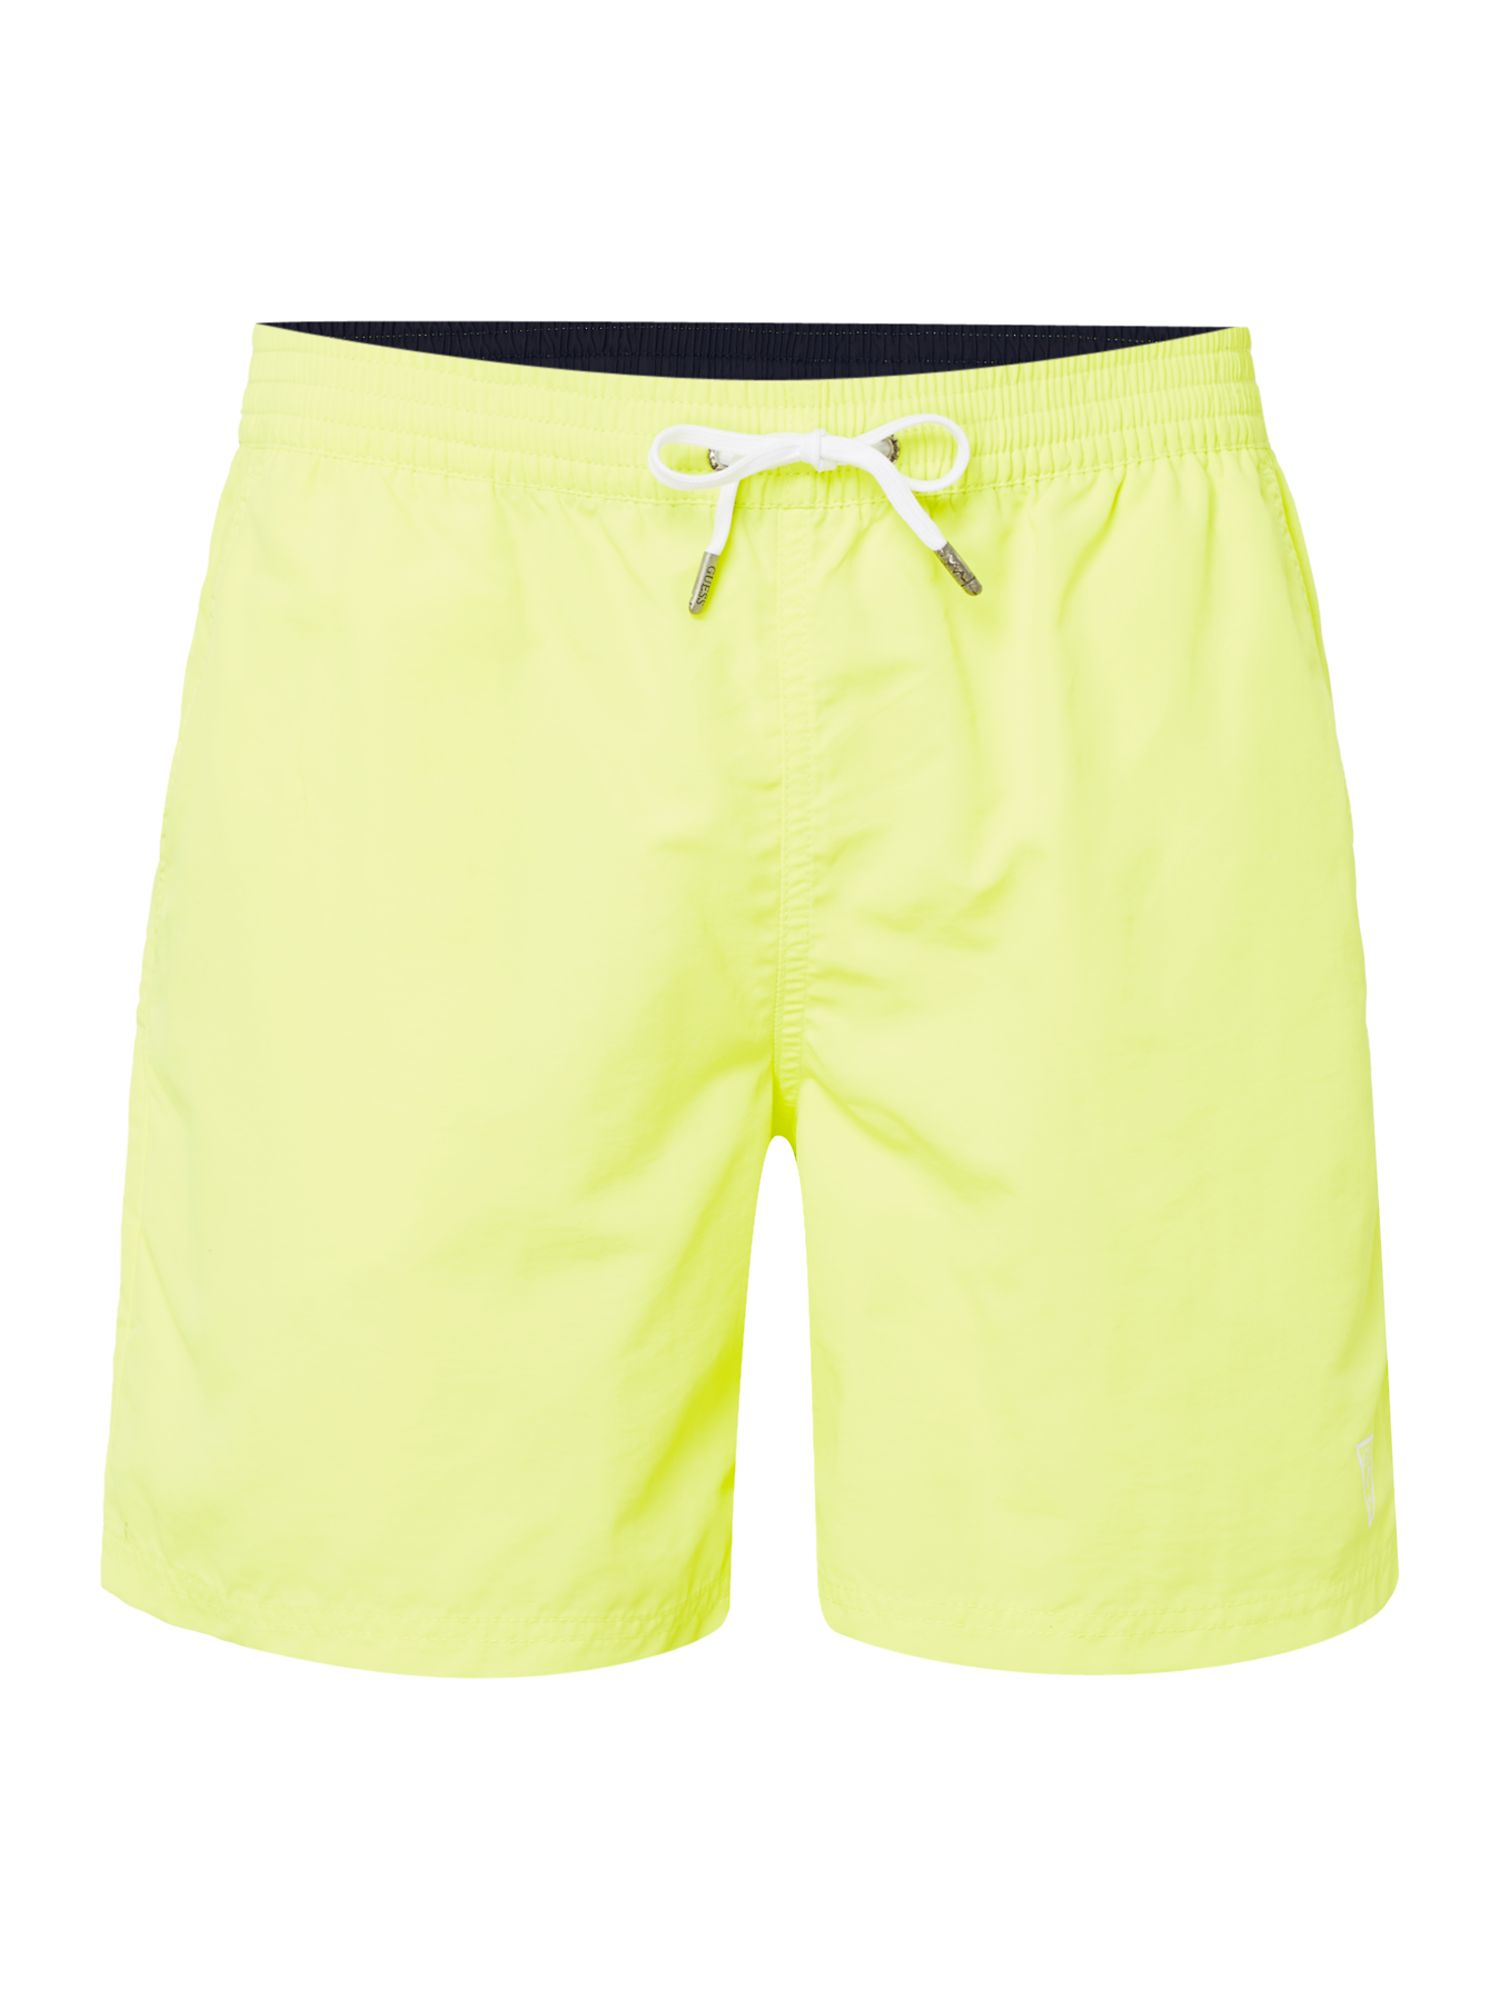 Men's Guess Mid Length Logo Swim Shorts, Yellow